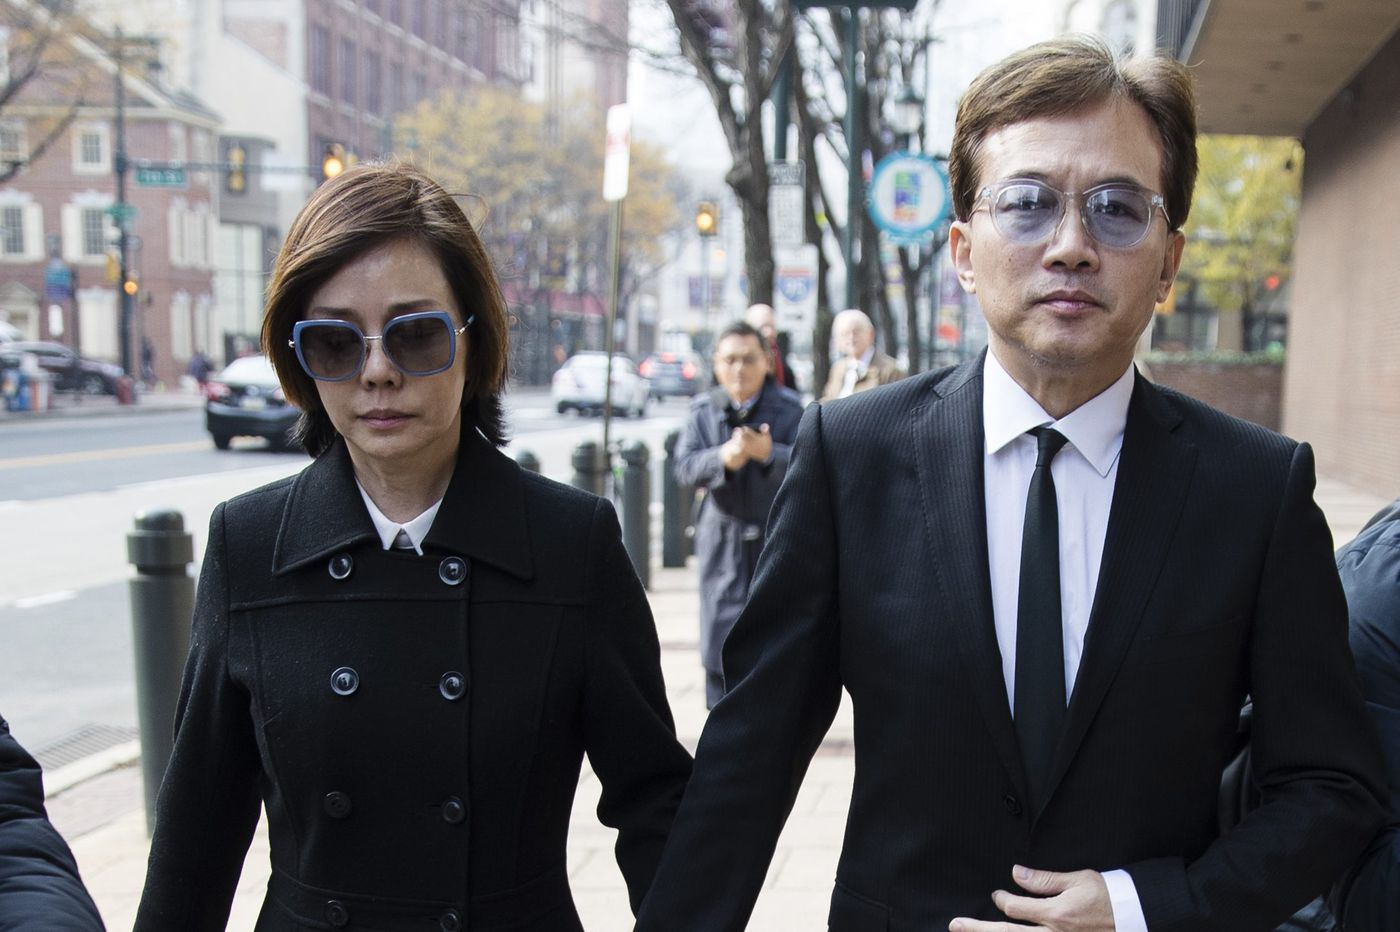 Son of Taiwanese celebrities to be released, deported after Delco school shooting threat